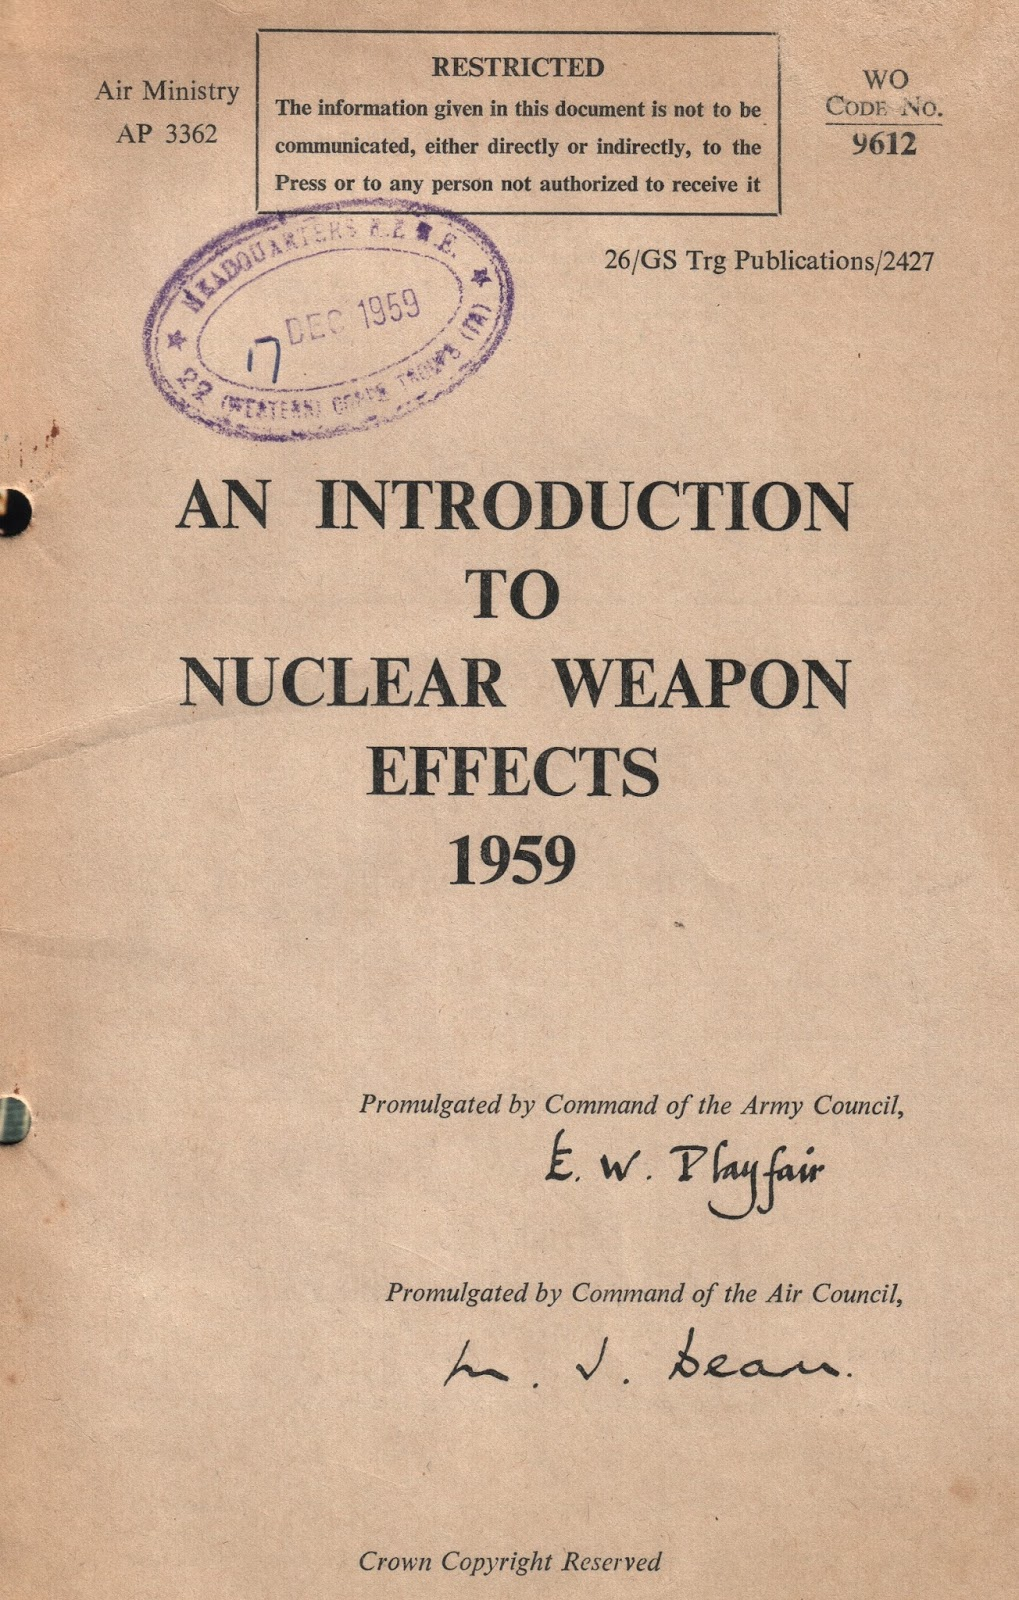 Effects of nuclear weaponry on warfare